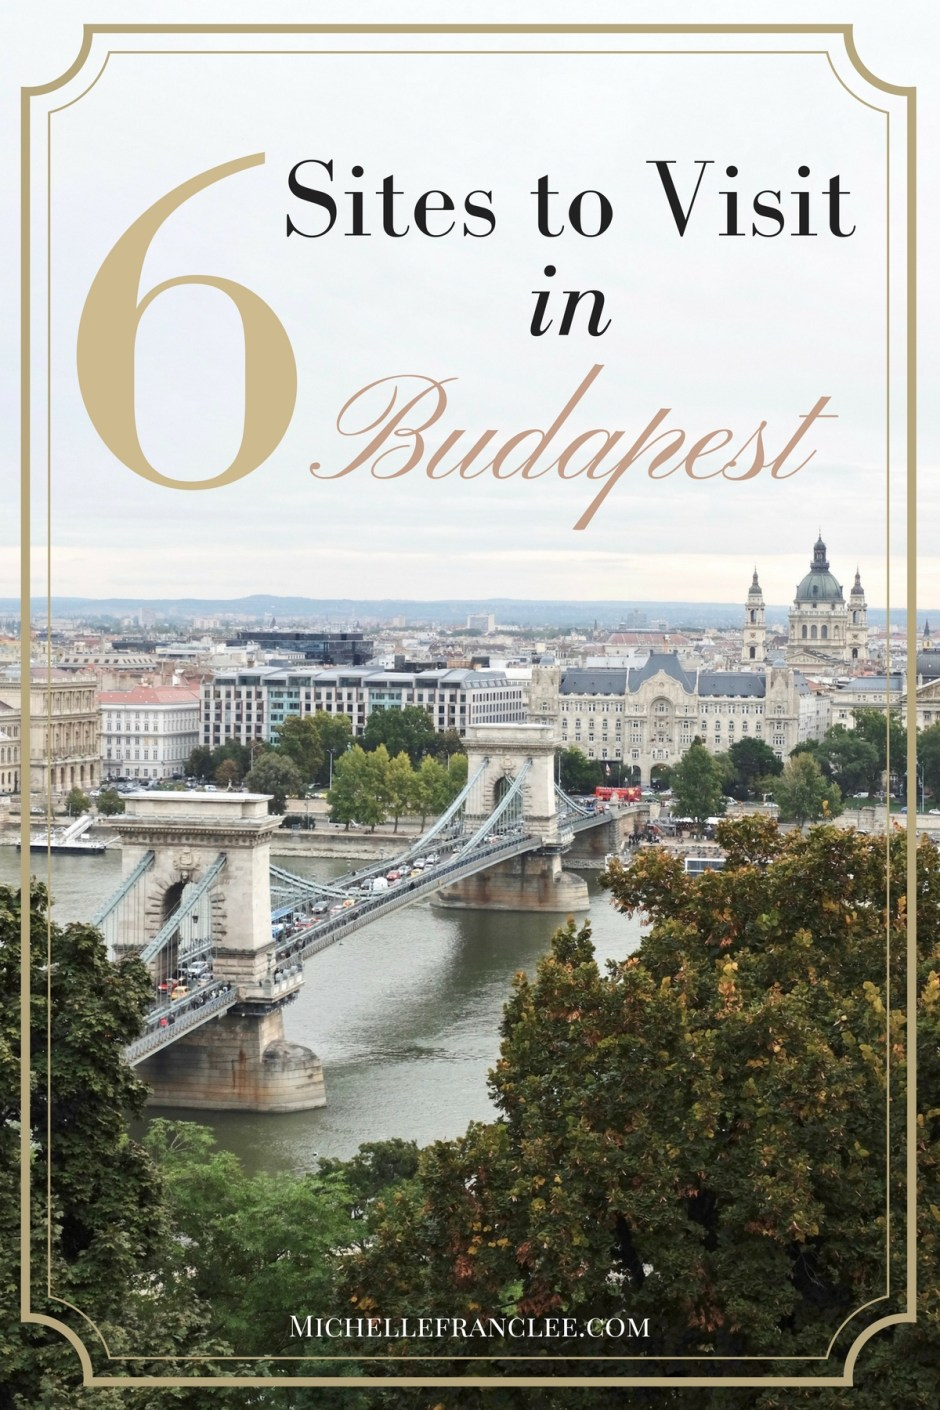 6 sites to visit in Budapest